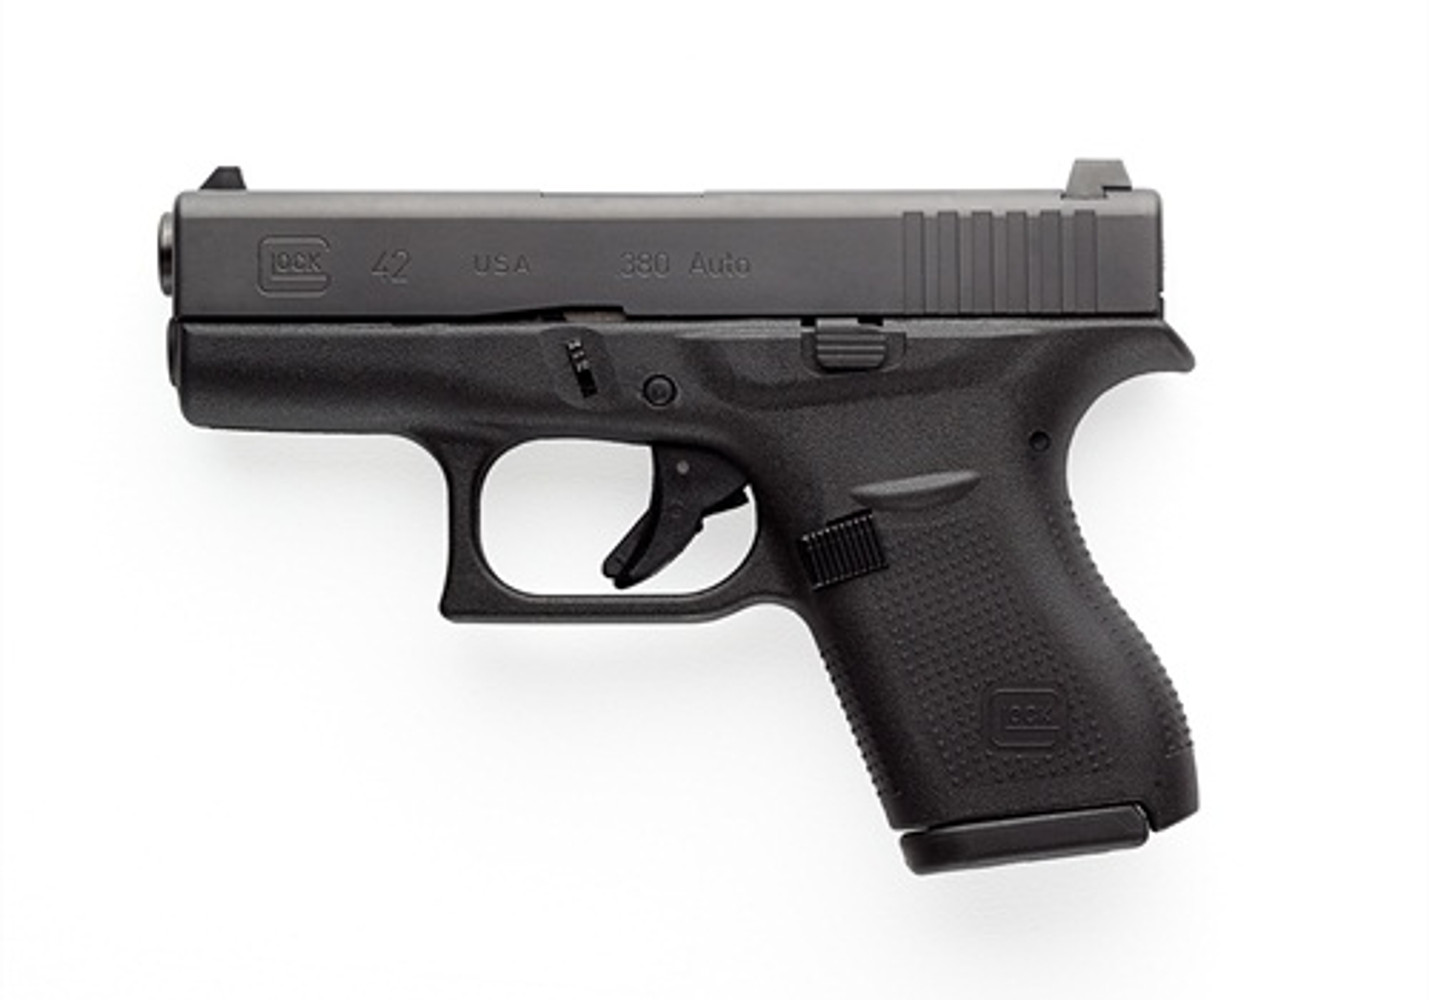 Glock 42 IWB Concealed Carry Holster